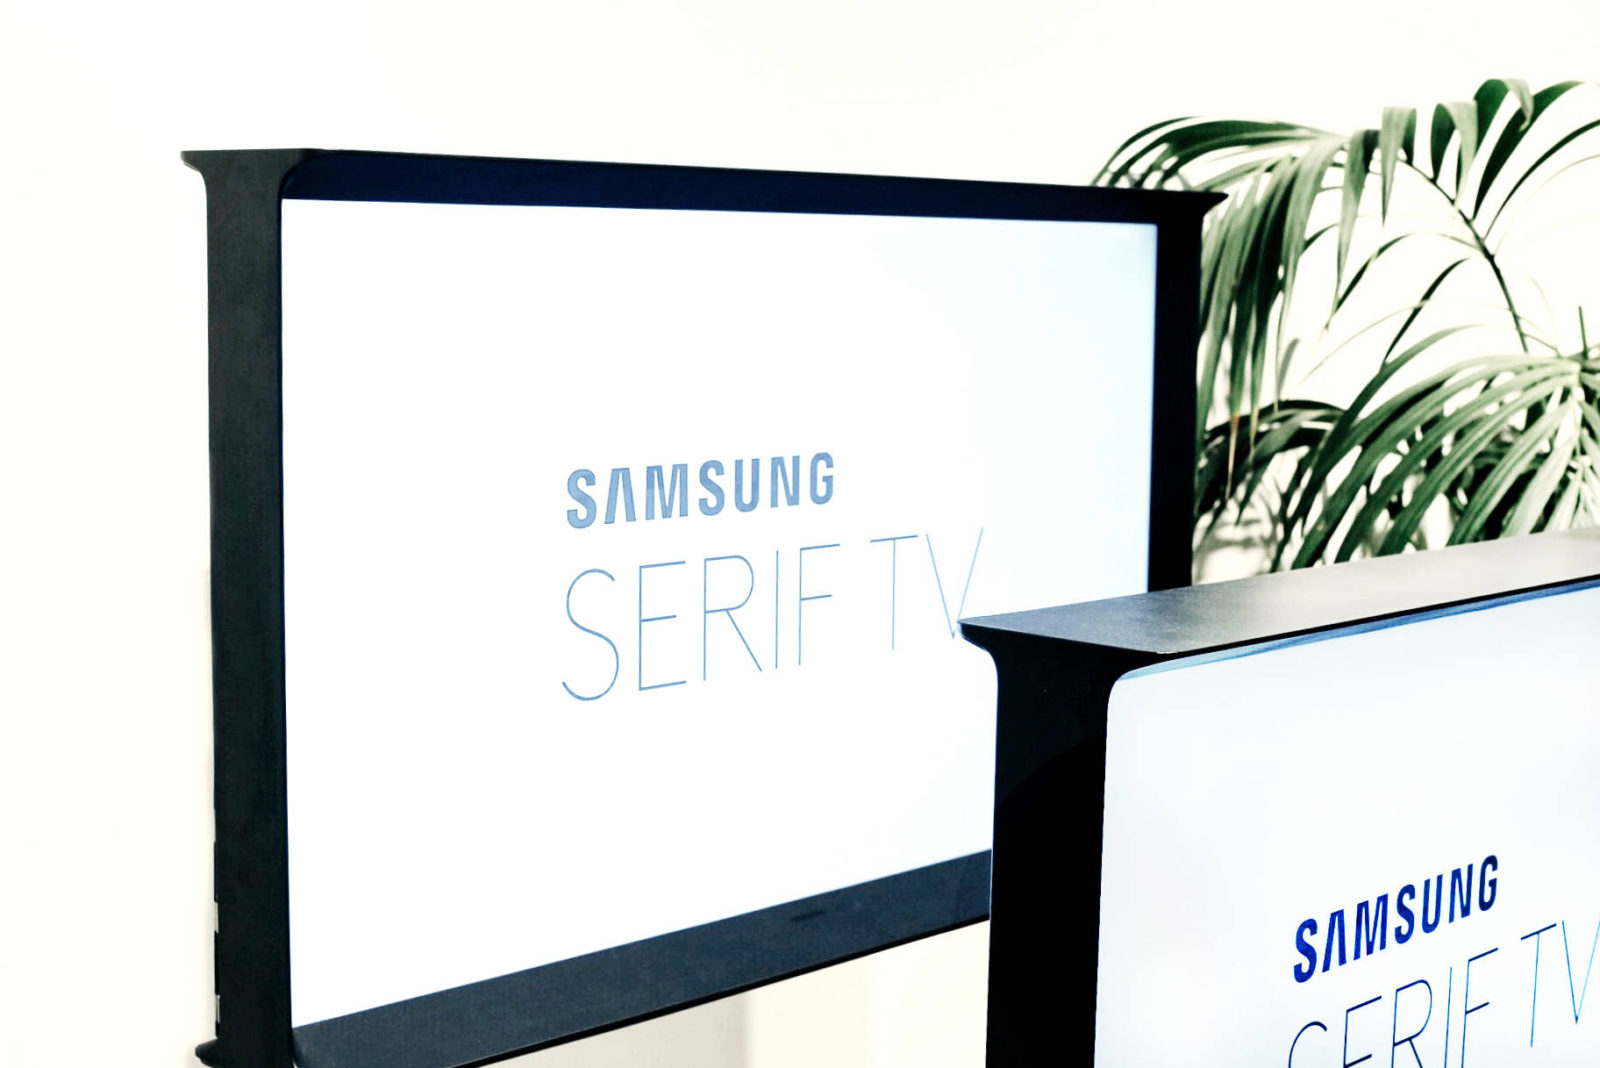 Samsung Serif TV partners with London Fashion Week